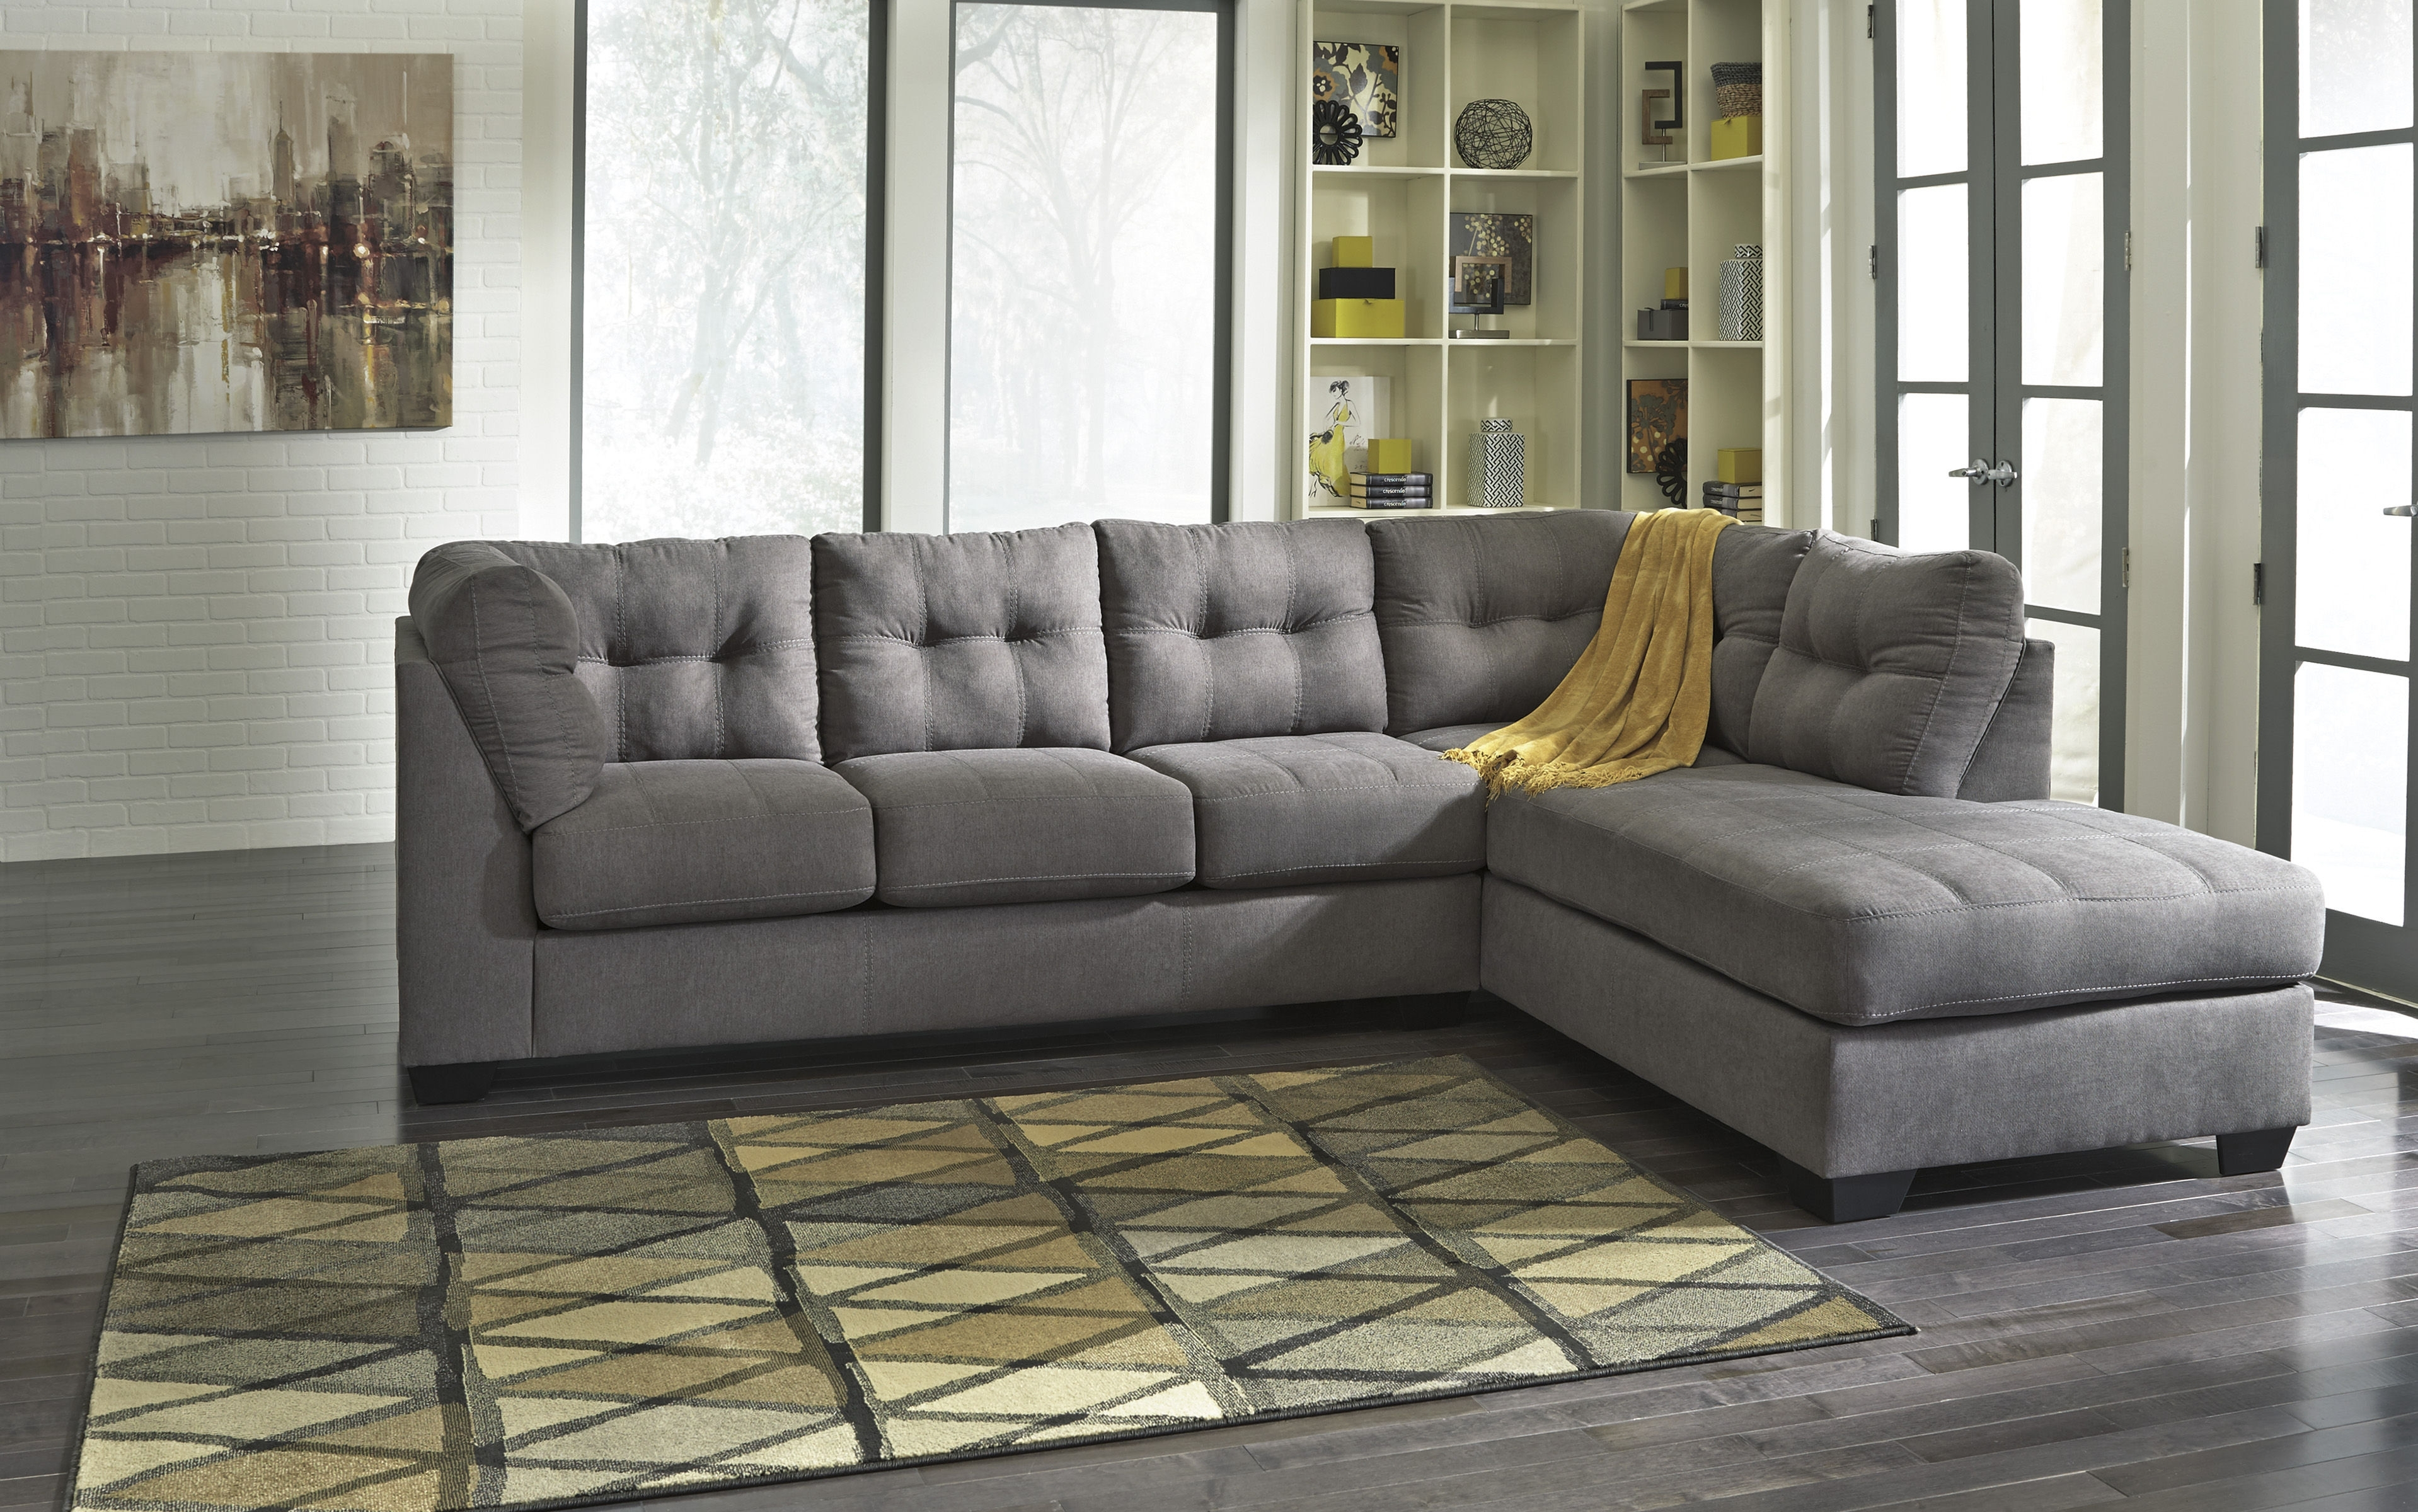 Ashley Furniture Maier Charcoal Raf Chaise Sectional | The Classy Home with regard to Lucy Dark Grey 2 Piece Sectionals With Laf Chaise (Image 7 of 30)